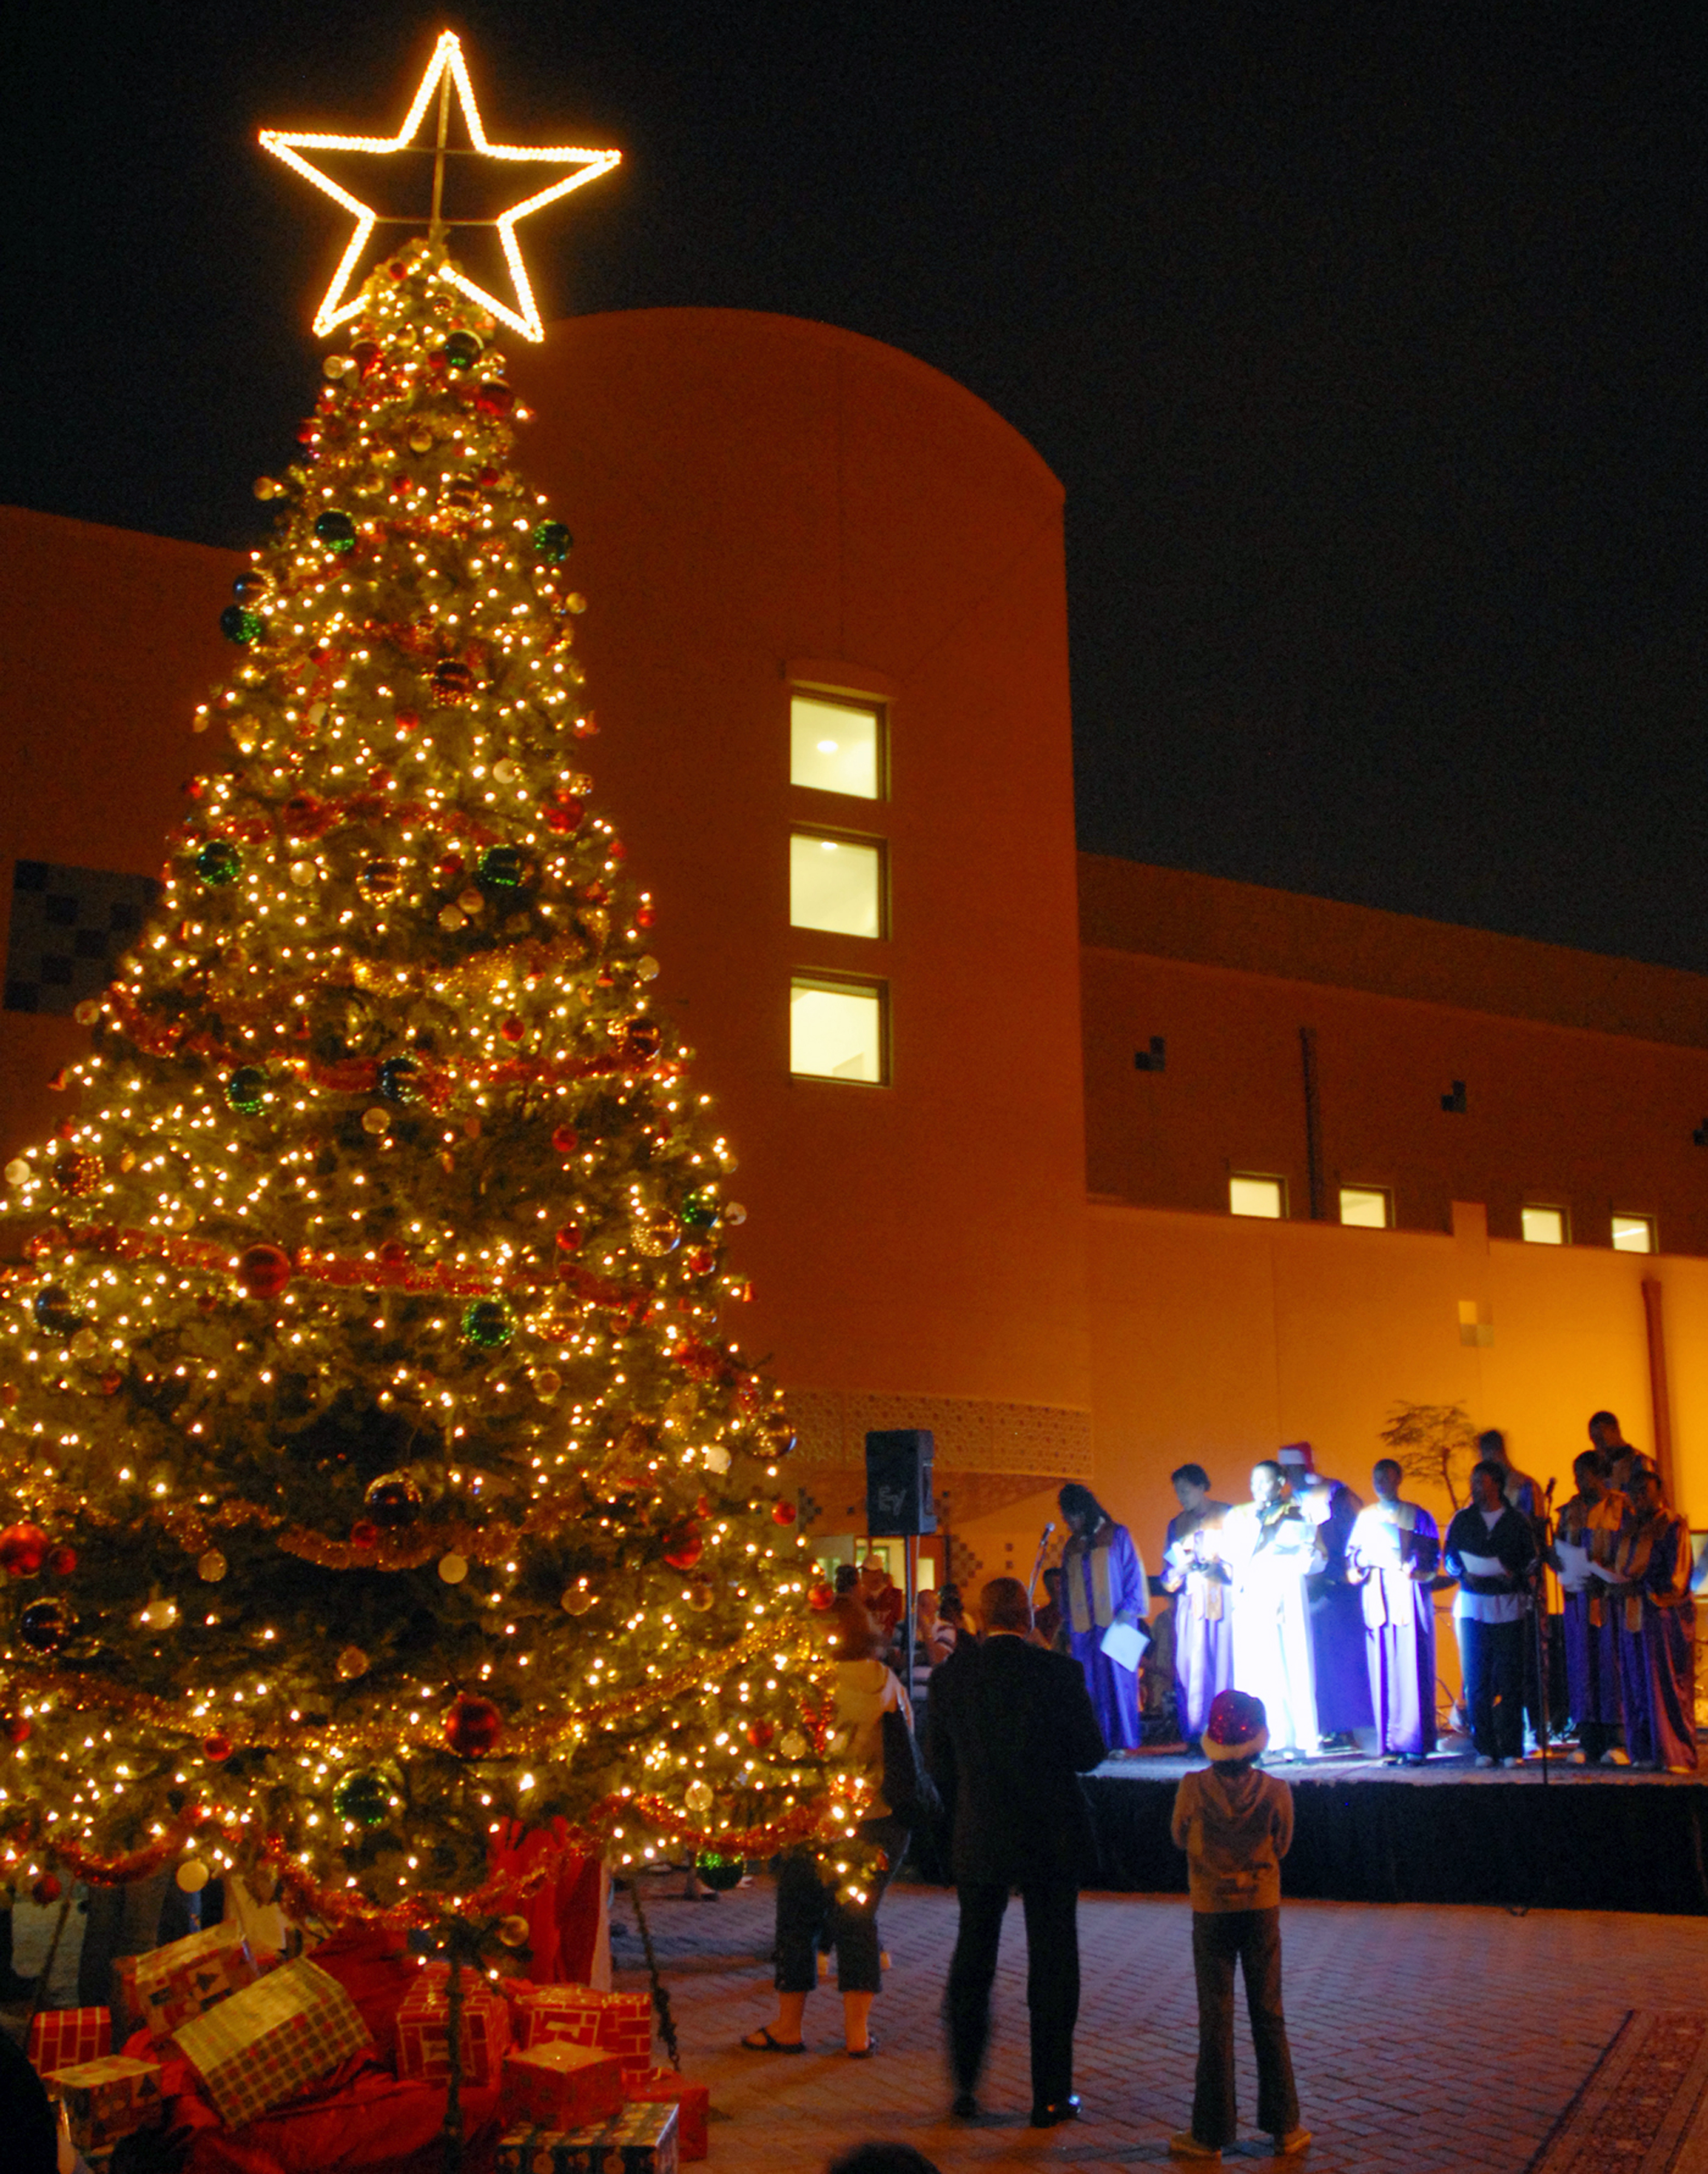 fileus navy 071202 n 0413b 002 the naval support activity bahrain - Celebration Christmas Lights